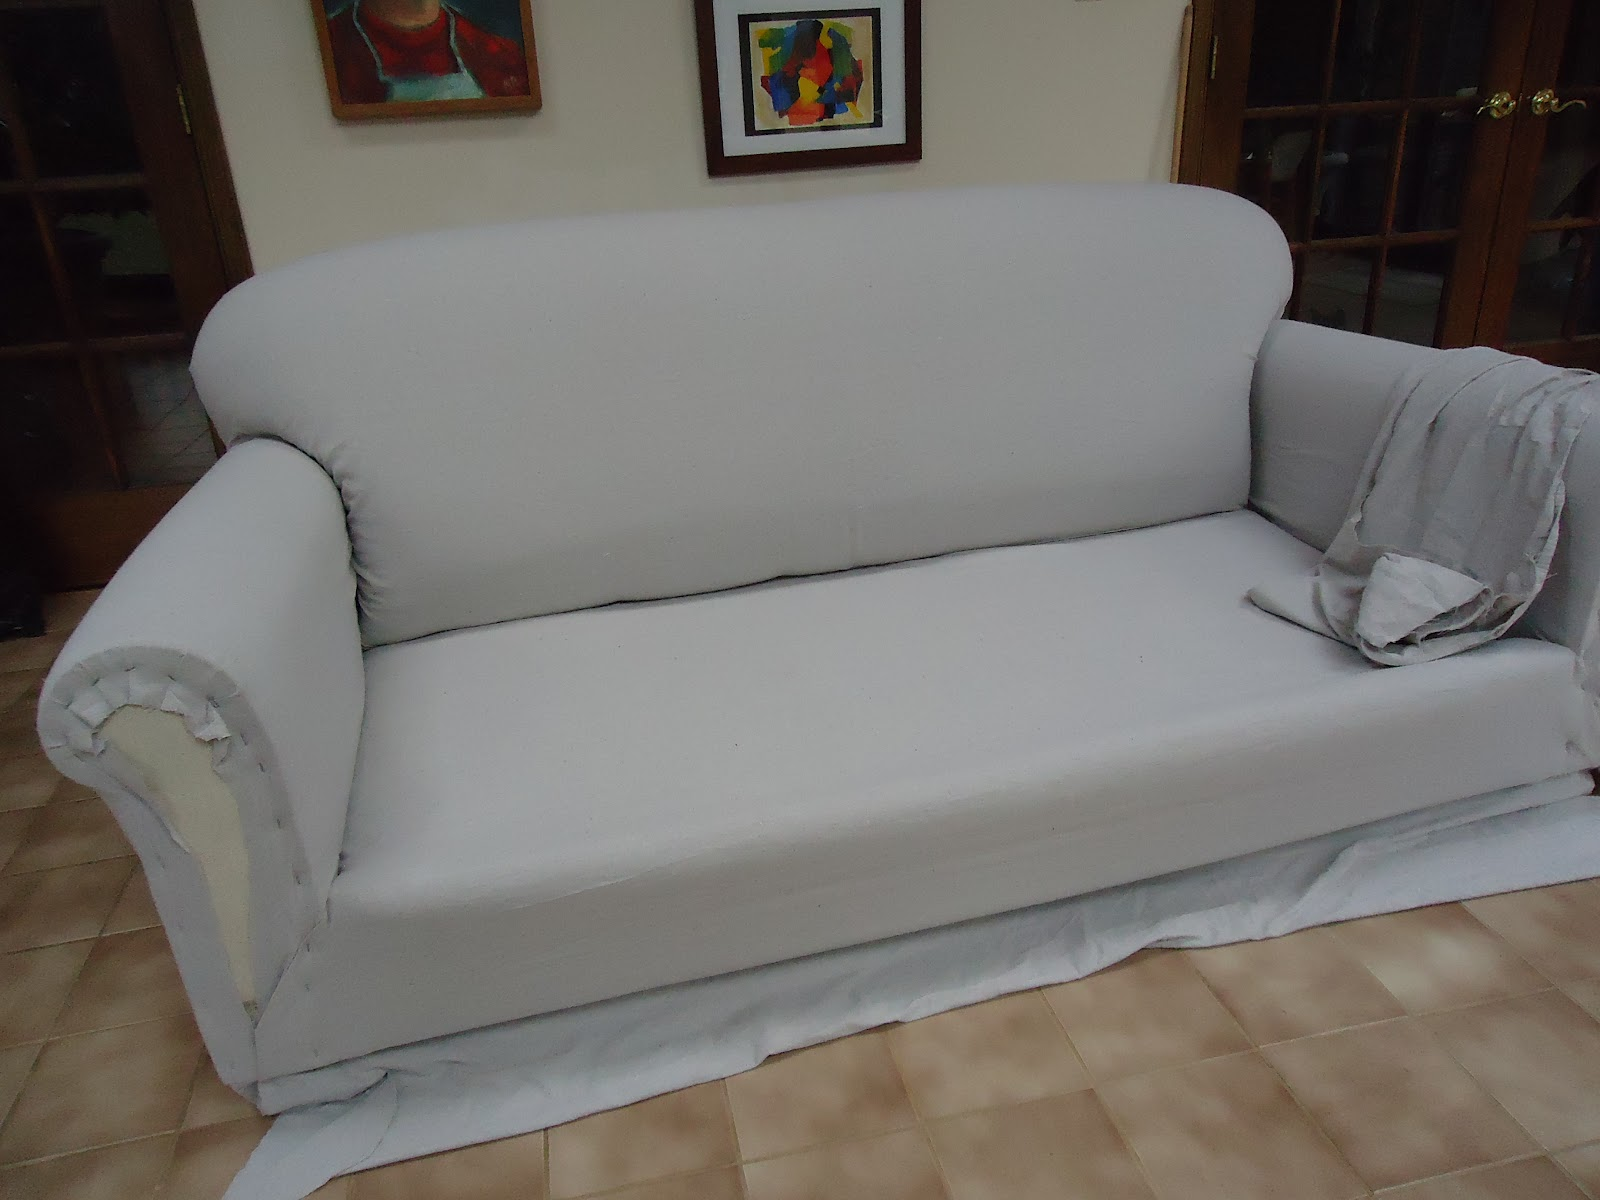 Best Fabric To Reupholster A Sofa Saver Boards Australia Powell Brower At Home My First